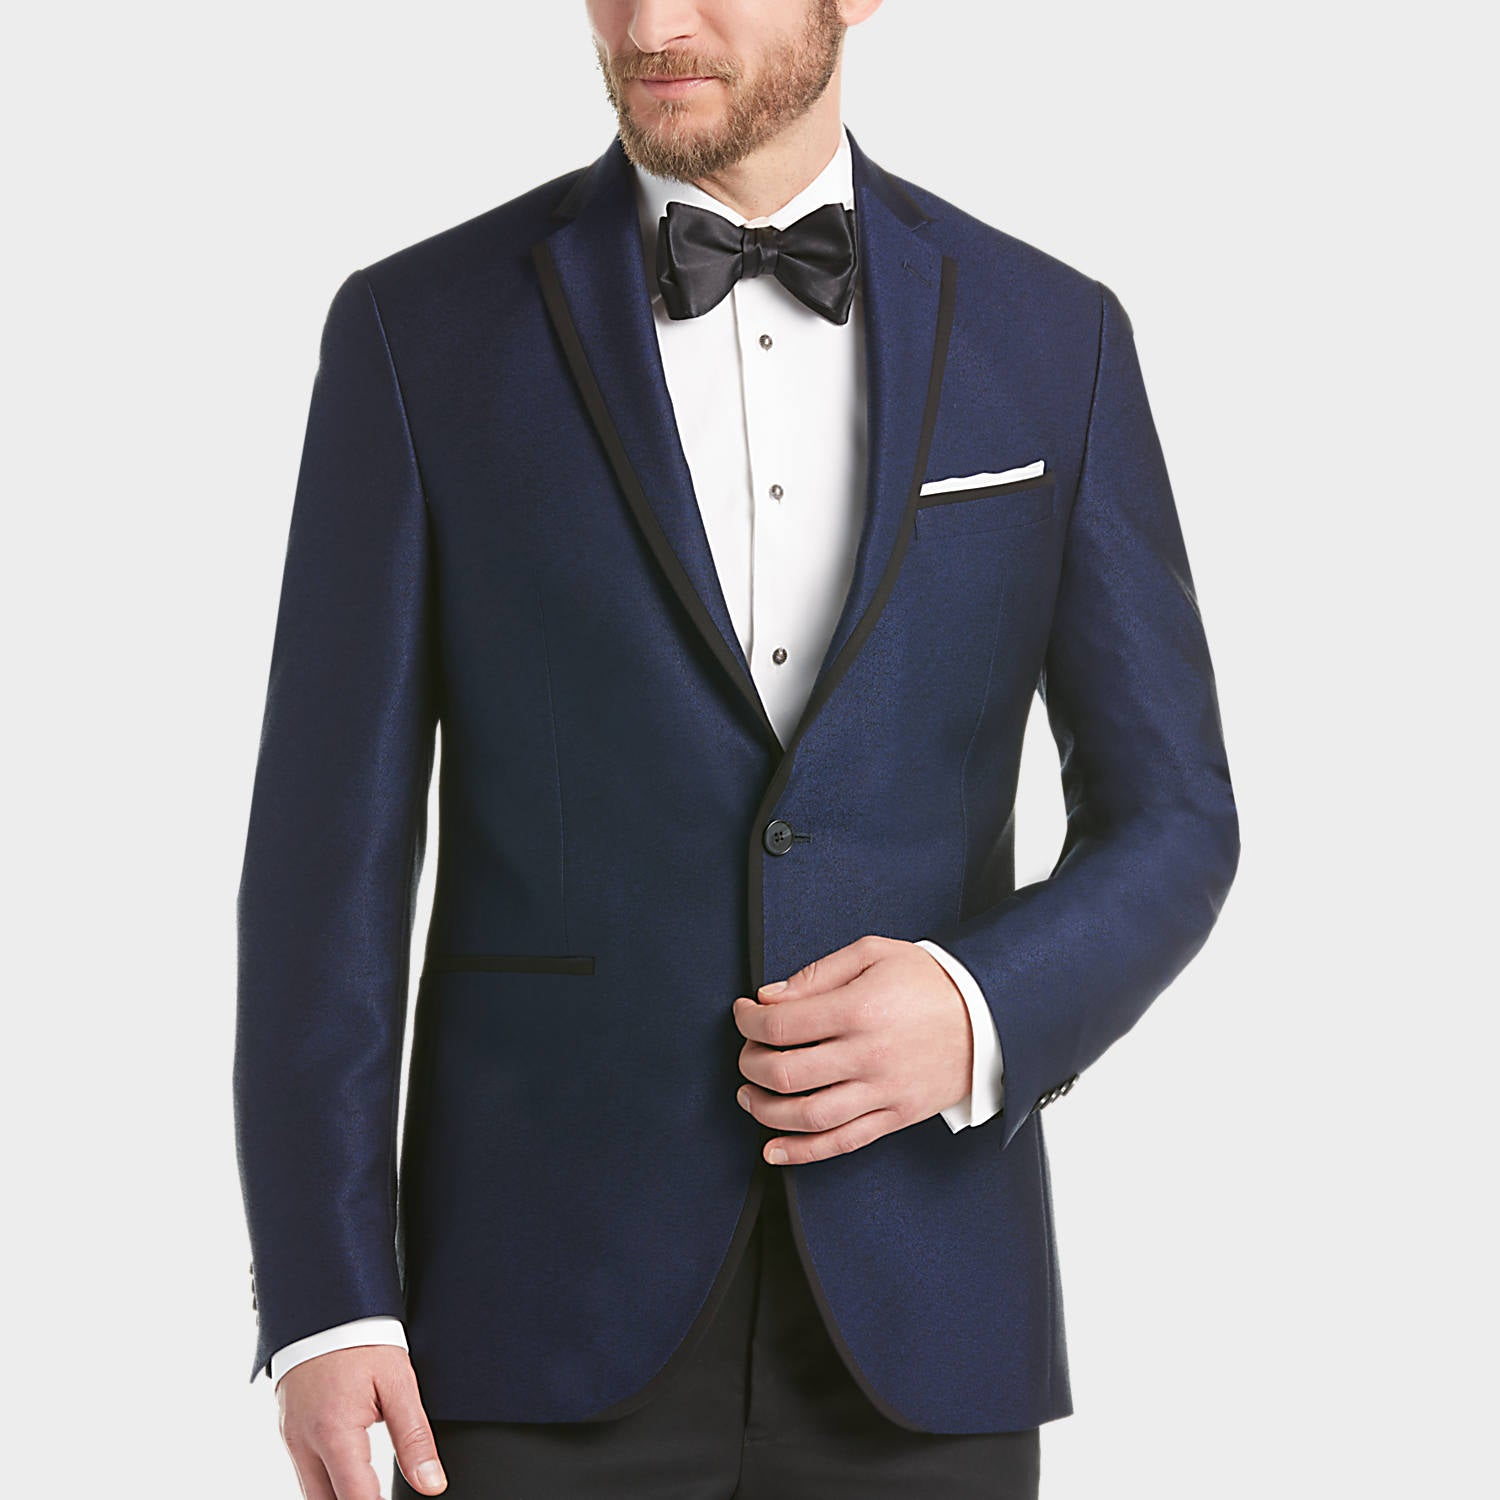 7bdab9bc7b0e Kenneth Cole Reaction Men s Solid Slim-Fit Dinner Jacket – Retail Trunk